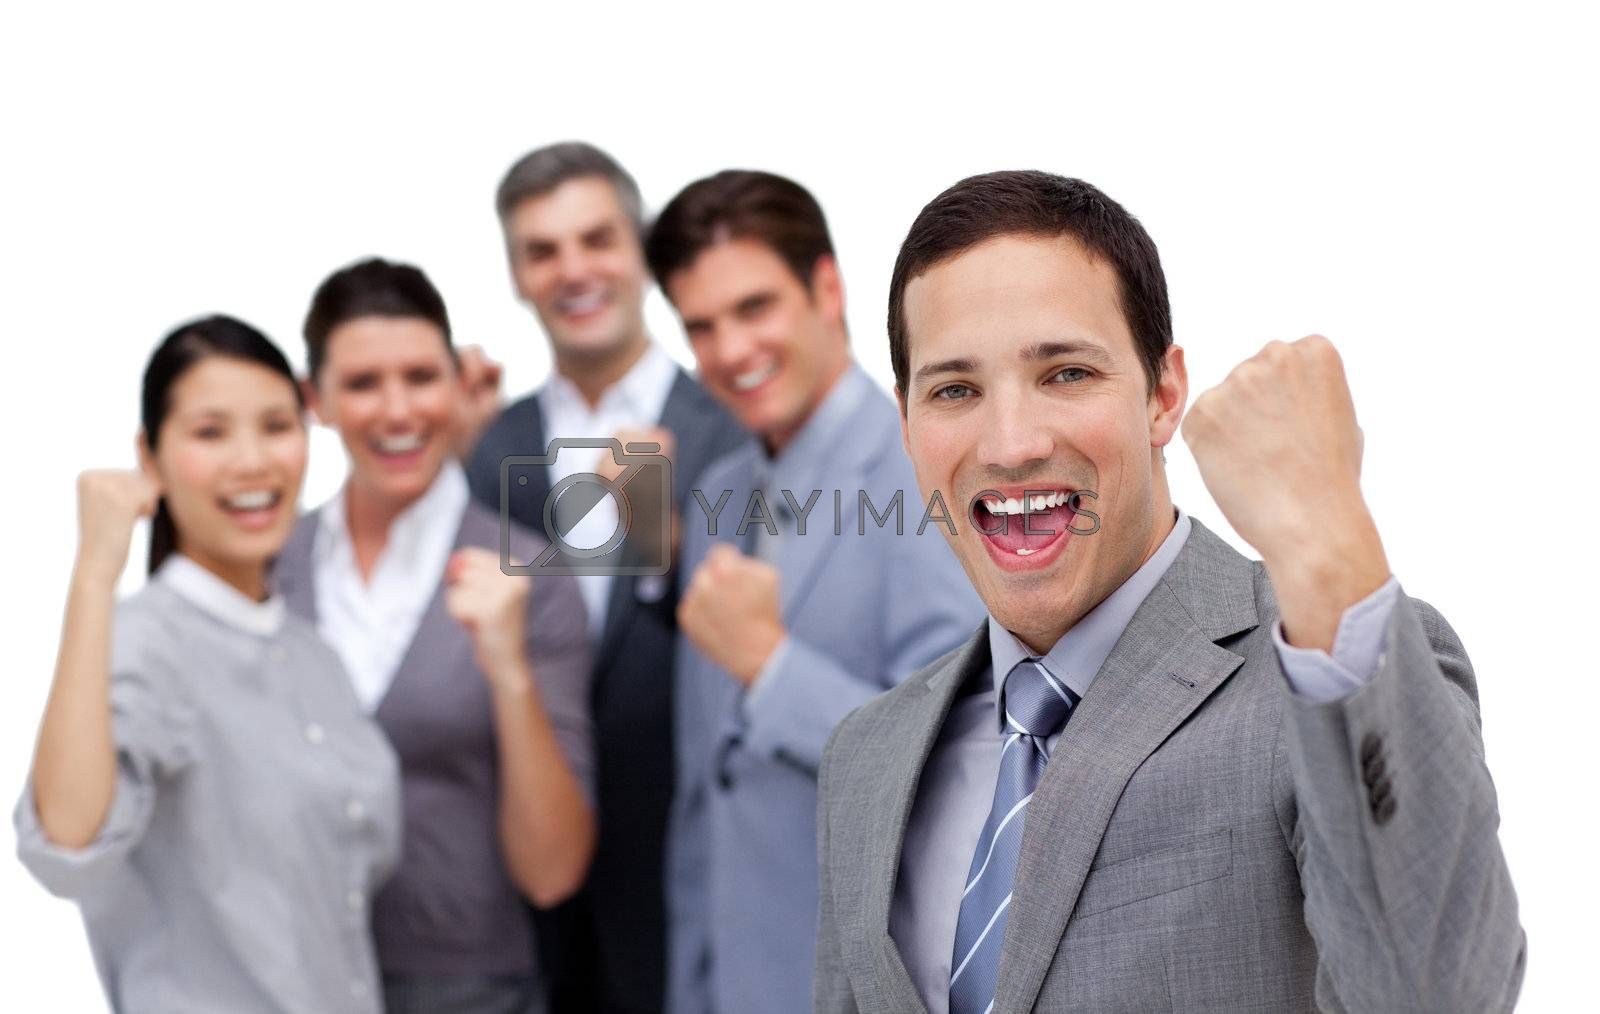 Successful business team punching the air in celebration by Wavebreakmedia